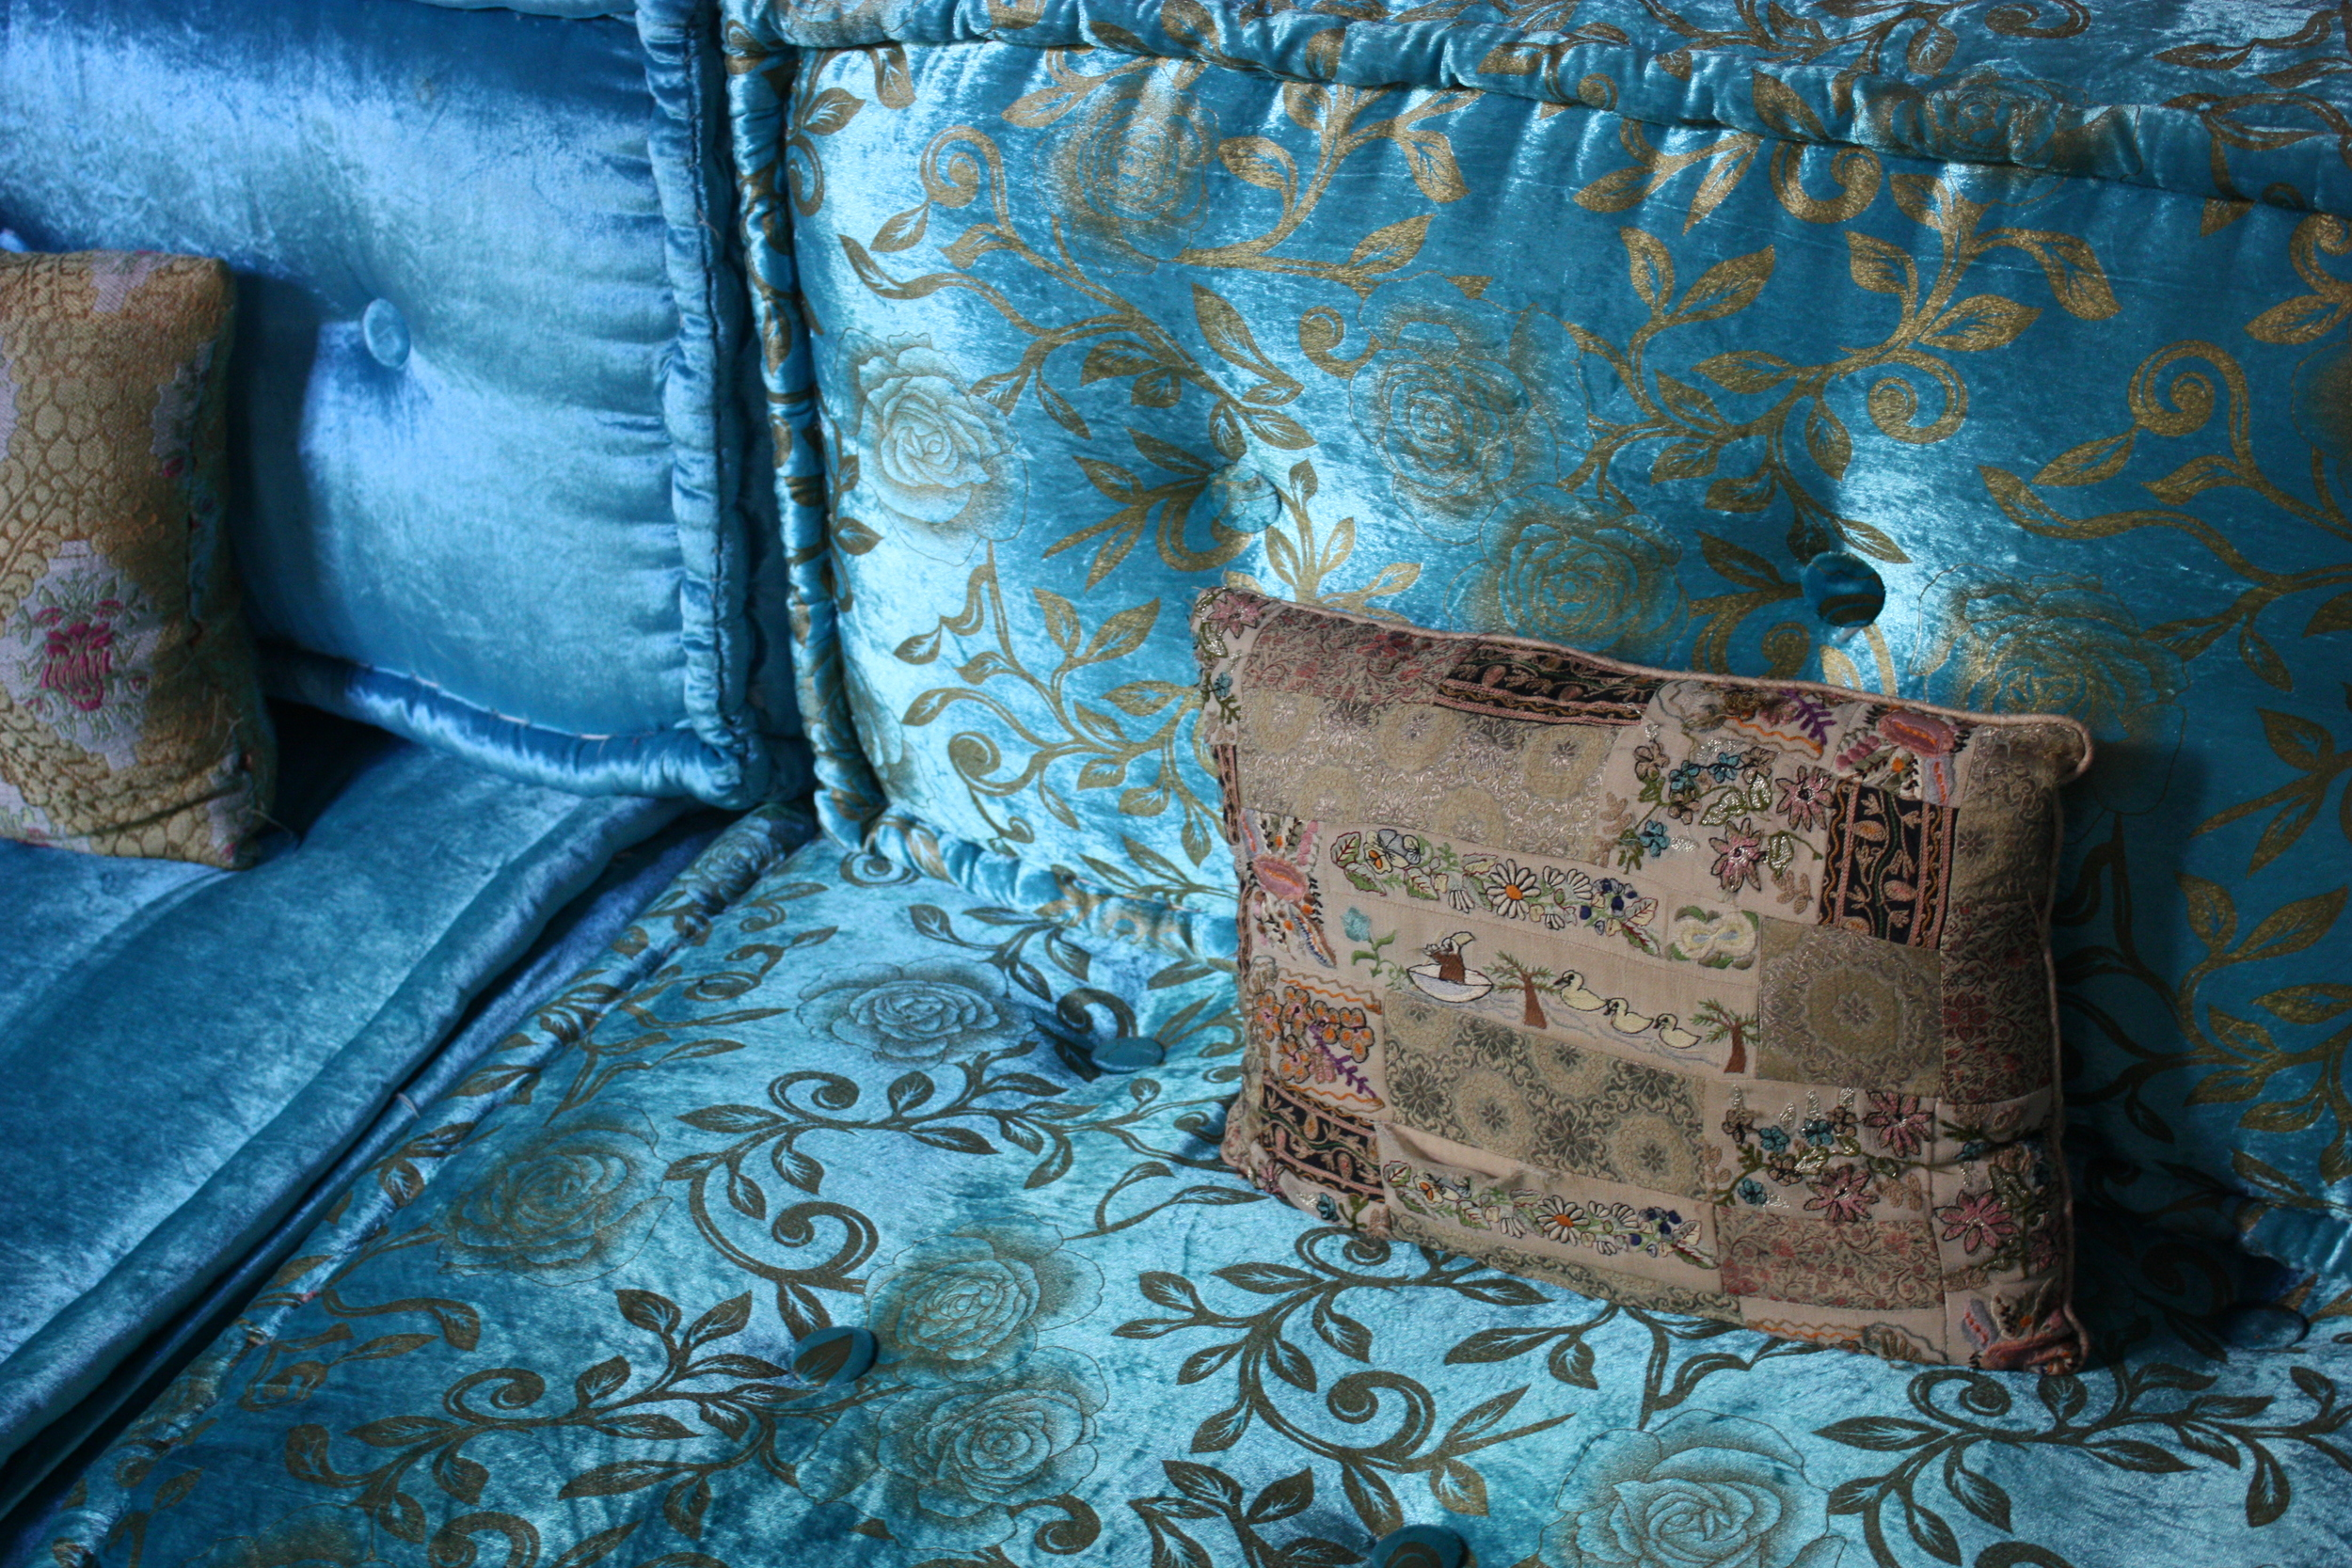 Old-fashioned plush velvets in luscious jewel colors are traditional in the Moroccan version of the divan, here combined with a delightfully embroidered pillow. From a riad salon in the old city of Fez in Morocco.